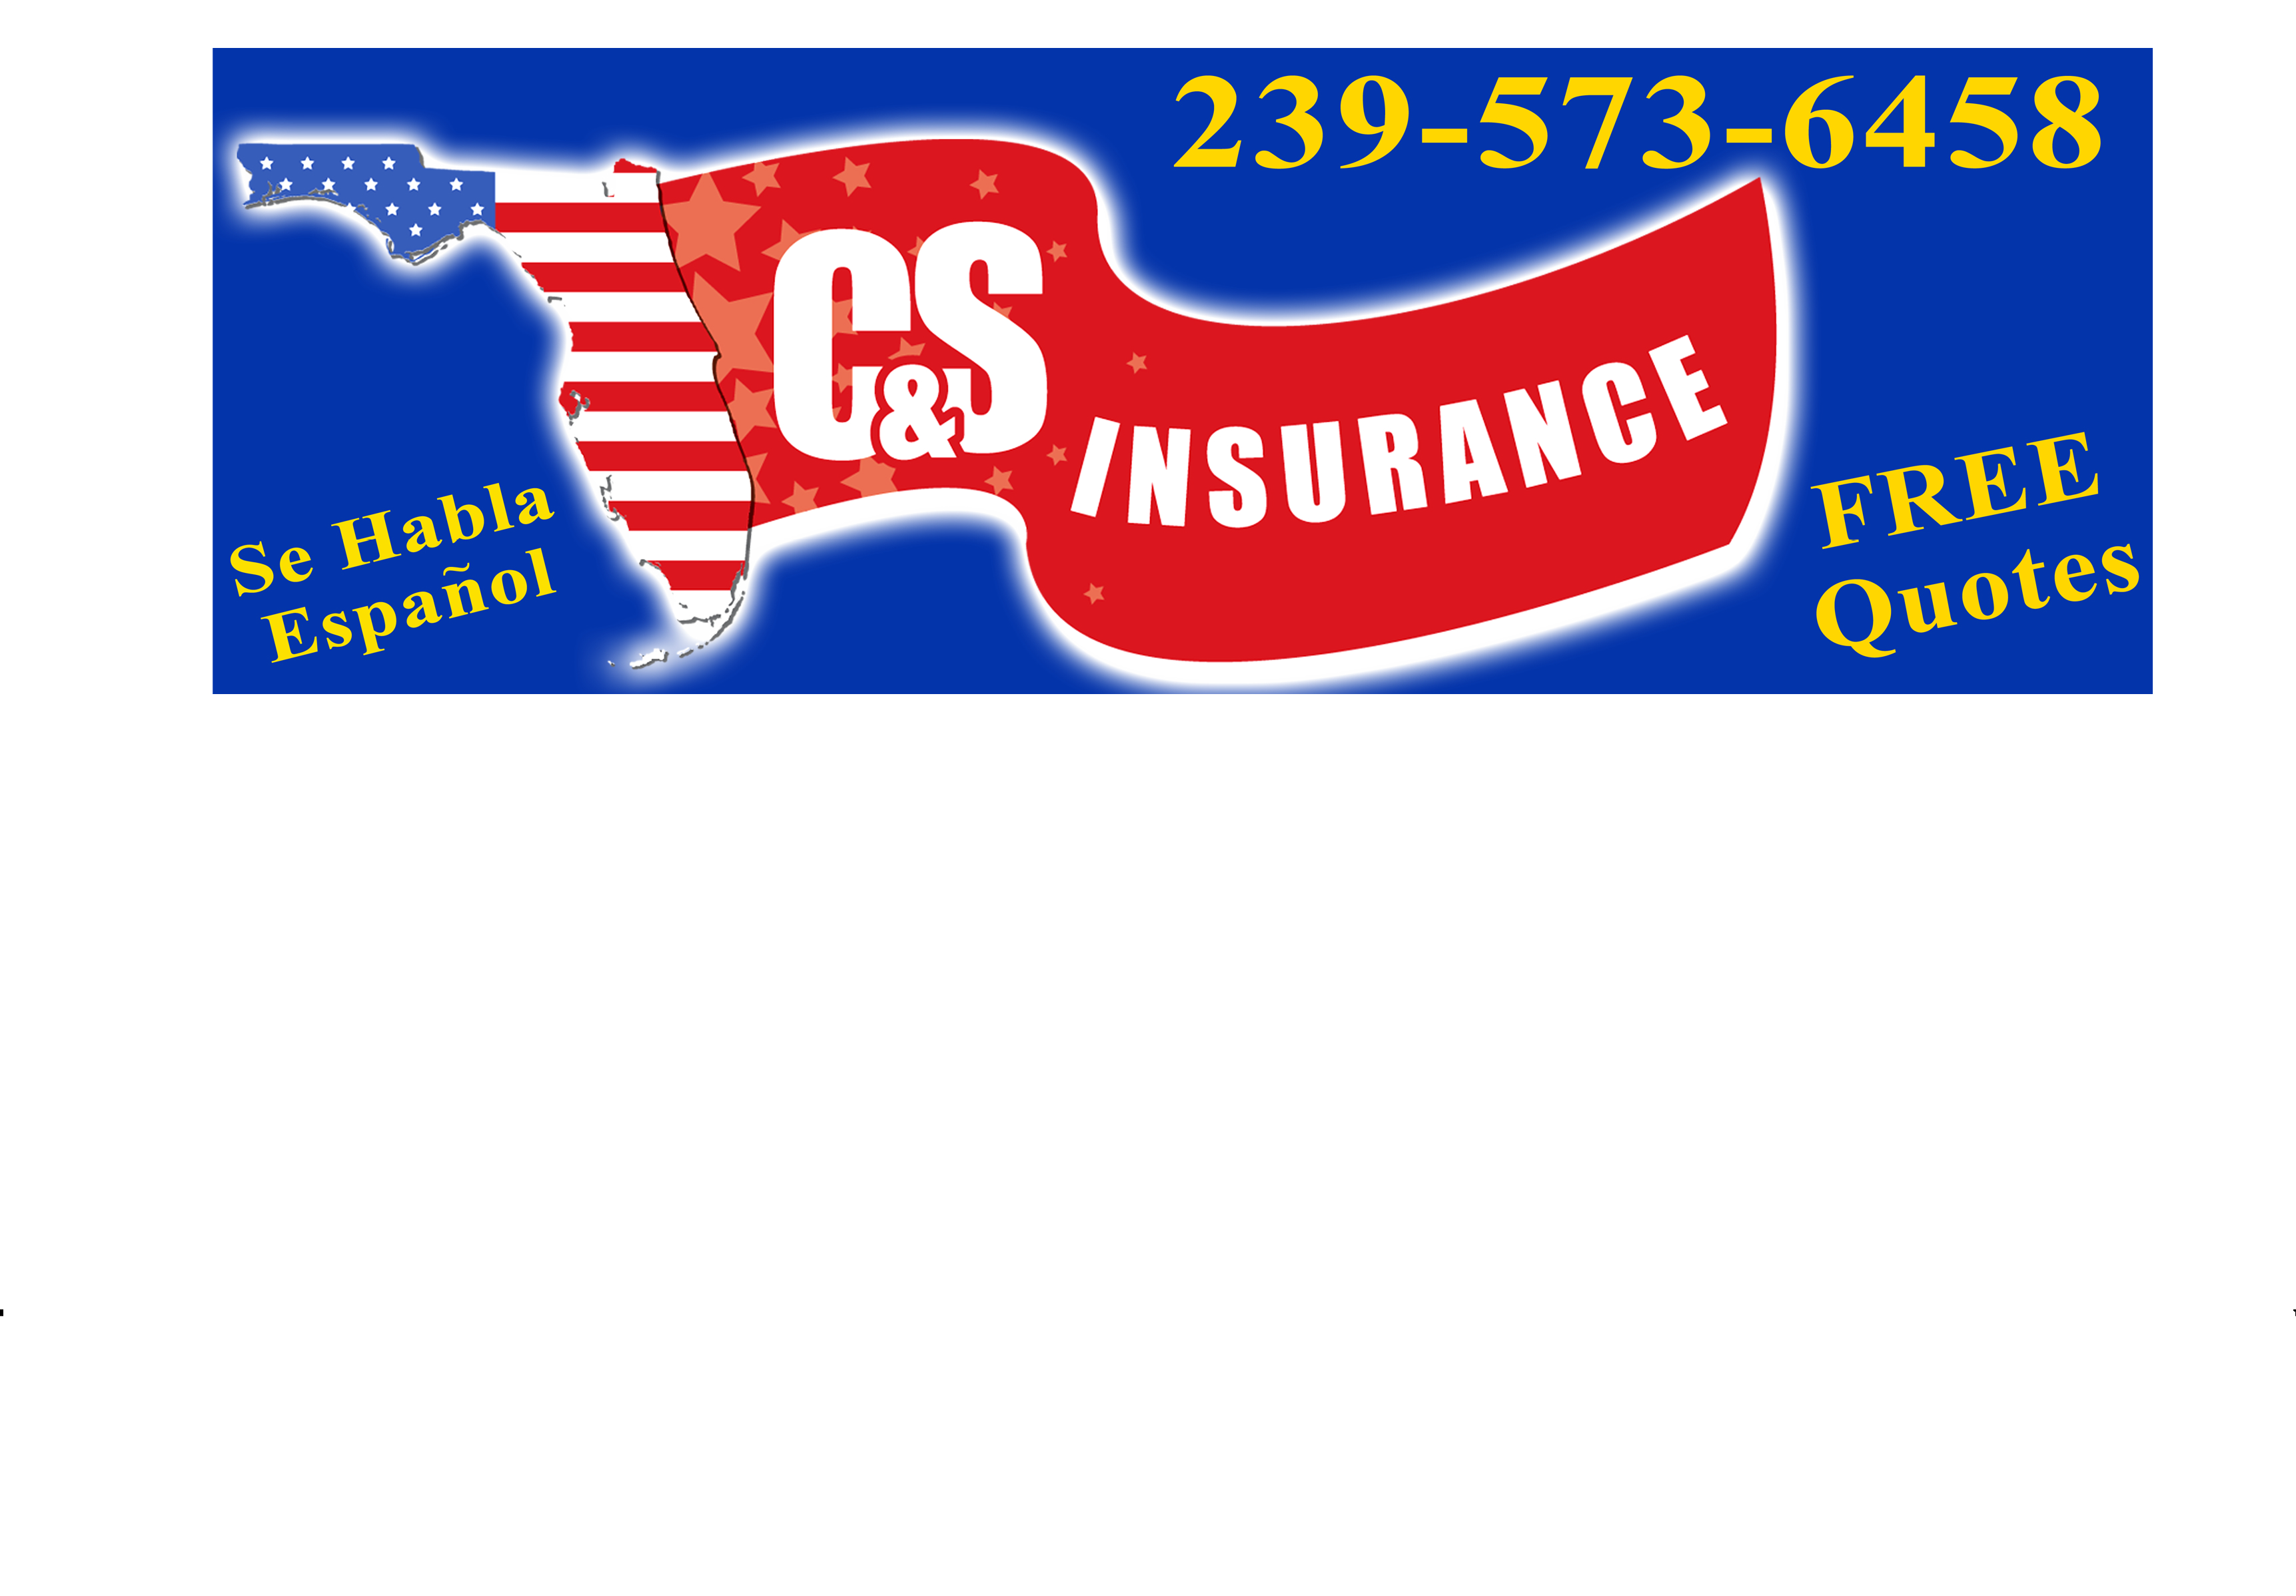 Unique C Amp S Insurance In Cape Coral FL  239 5736